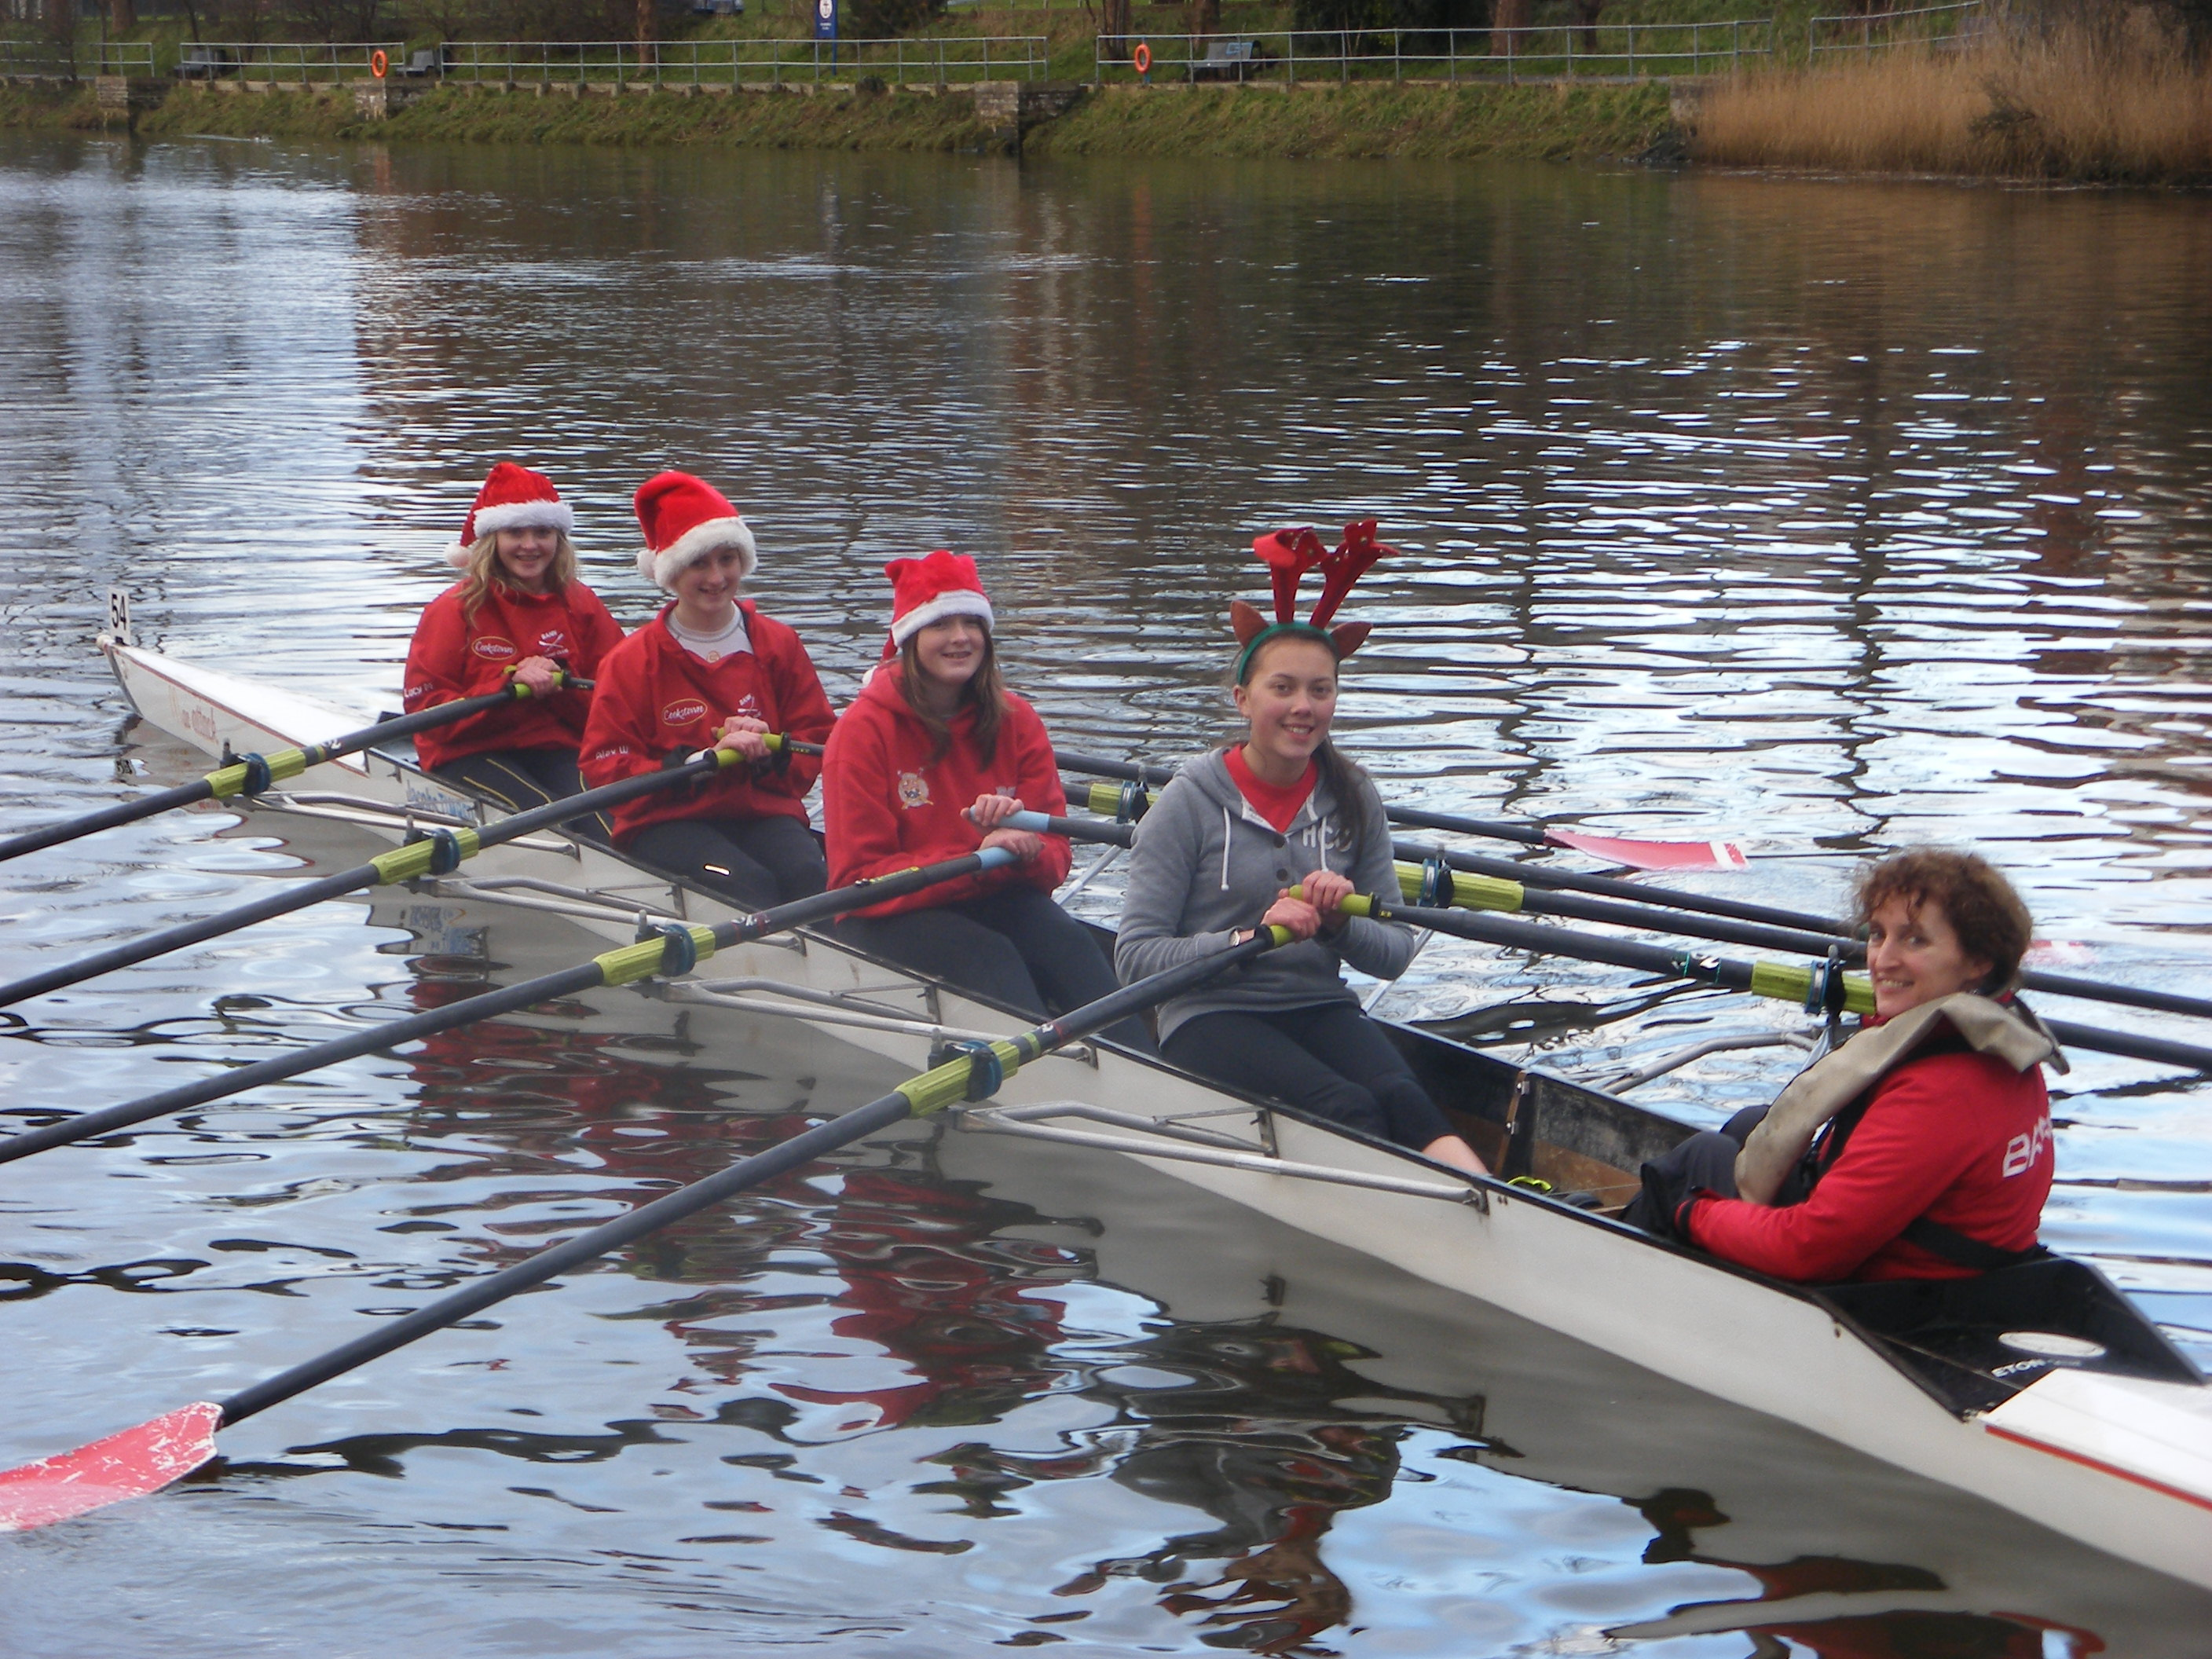 wj15-4x-lagan-festive-head-2011